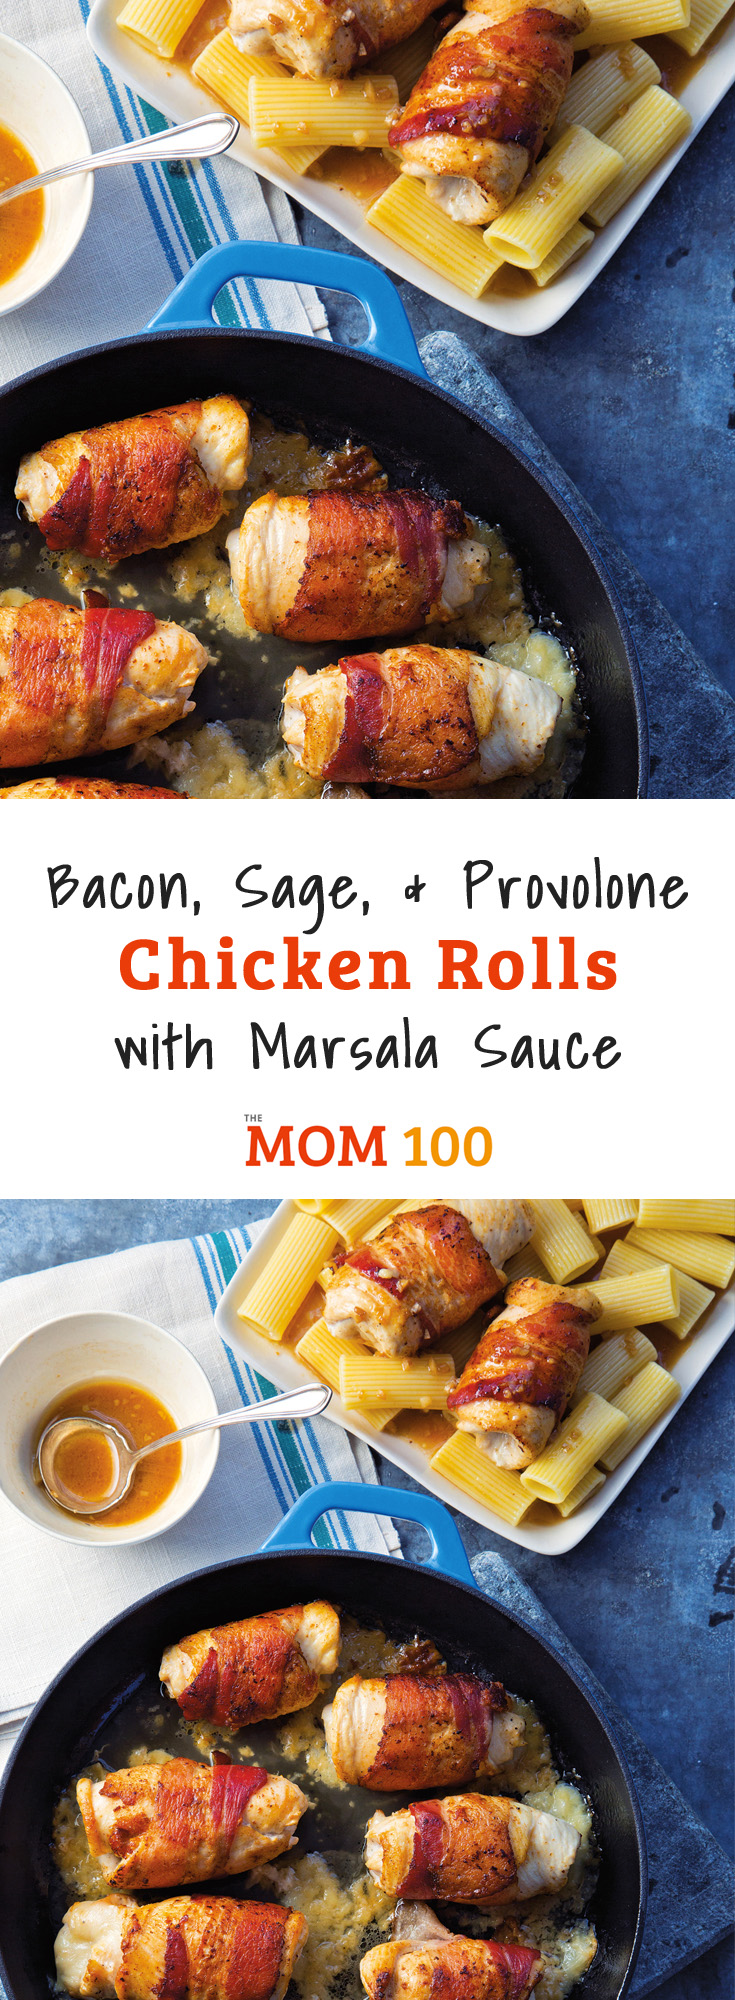 Bacon, Sage, and Provolone Chicken Rolls with Marsala Sauce is one of those highly crowd pleasing dinners that looks pretty special. #chicken #dinner